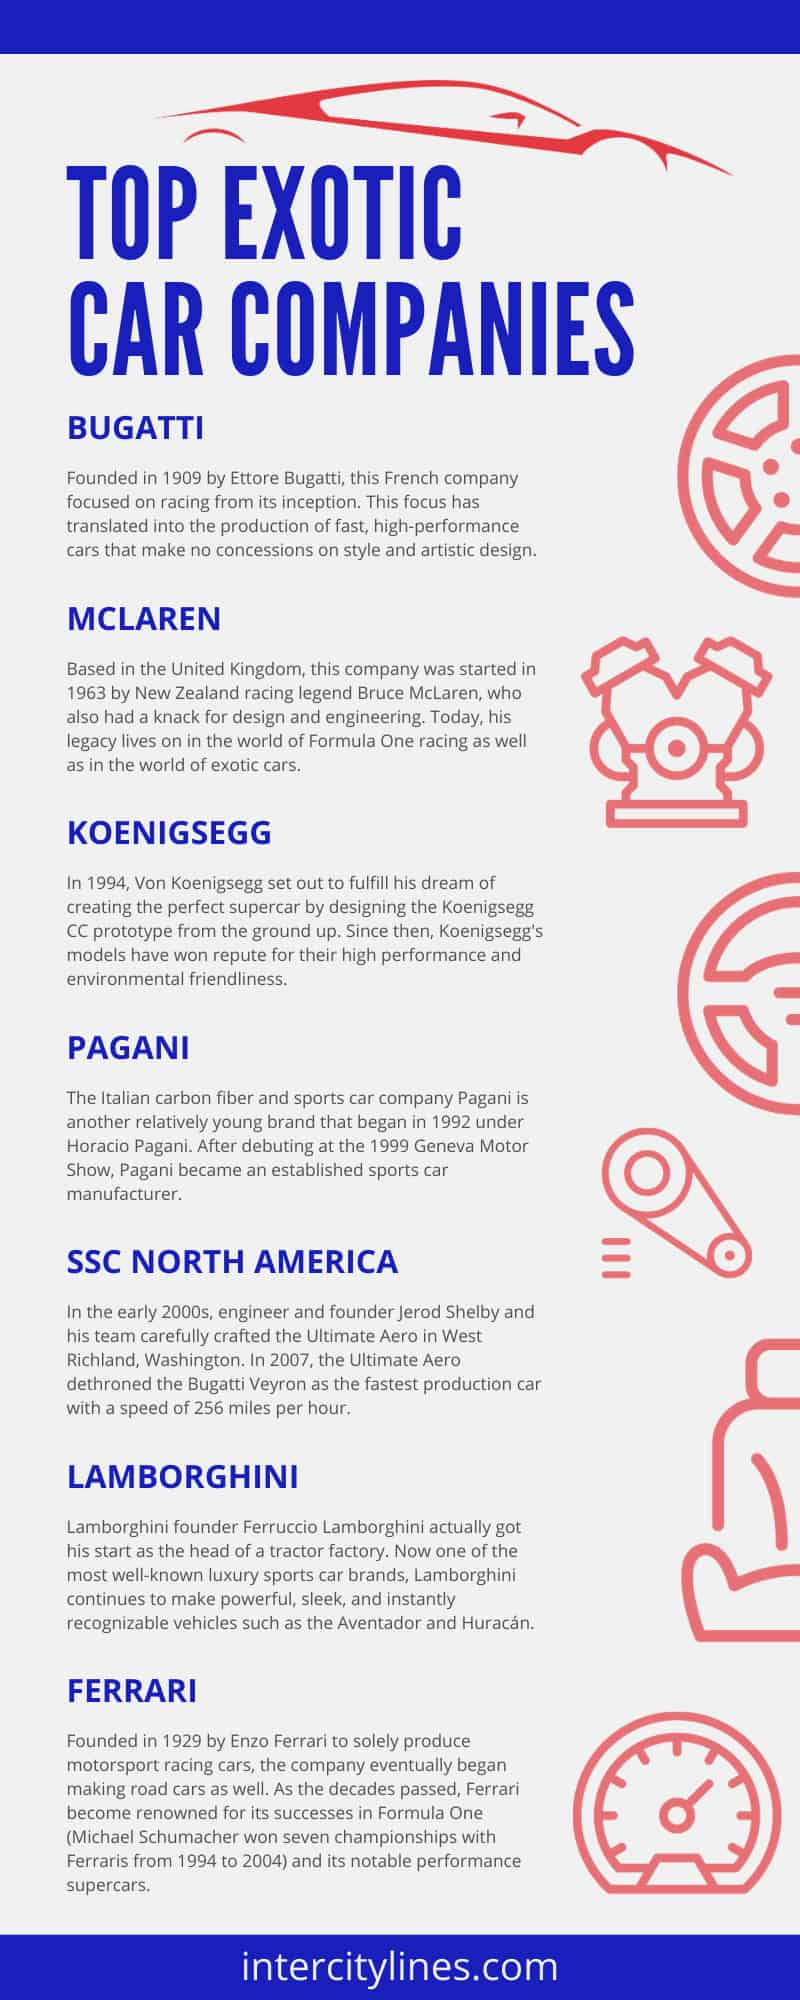 Top Exotic Car Companies infographic